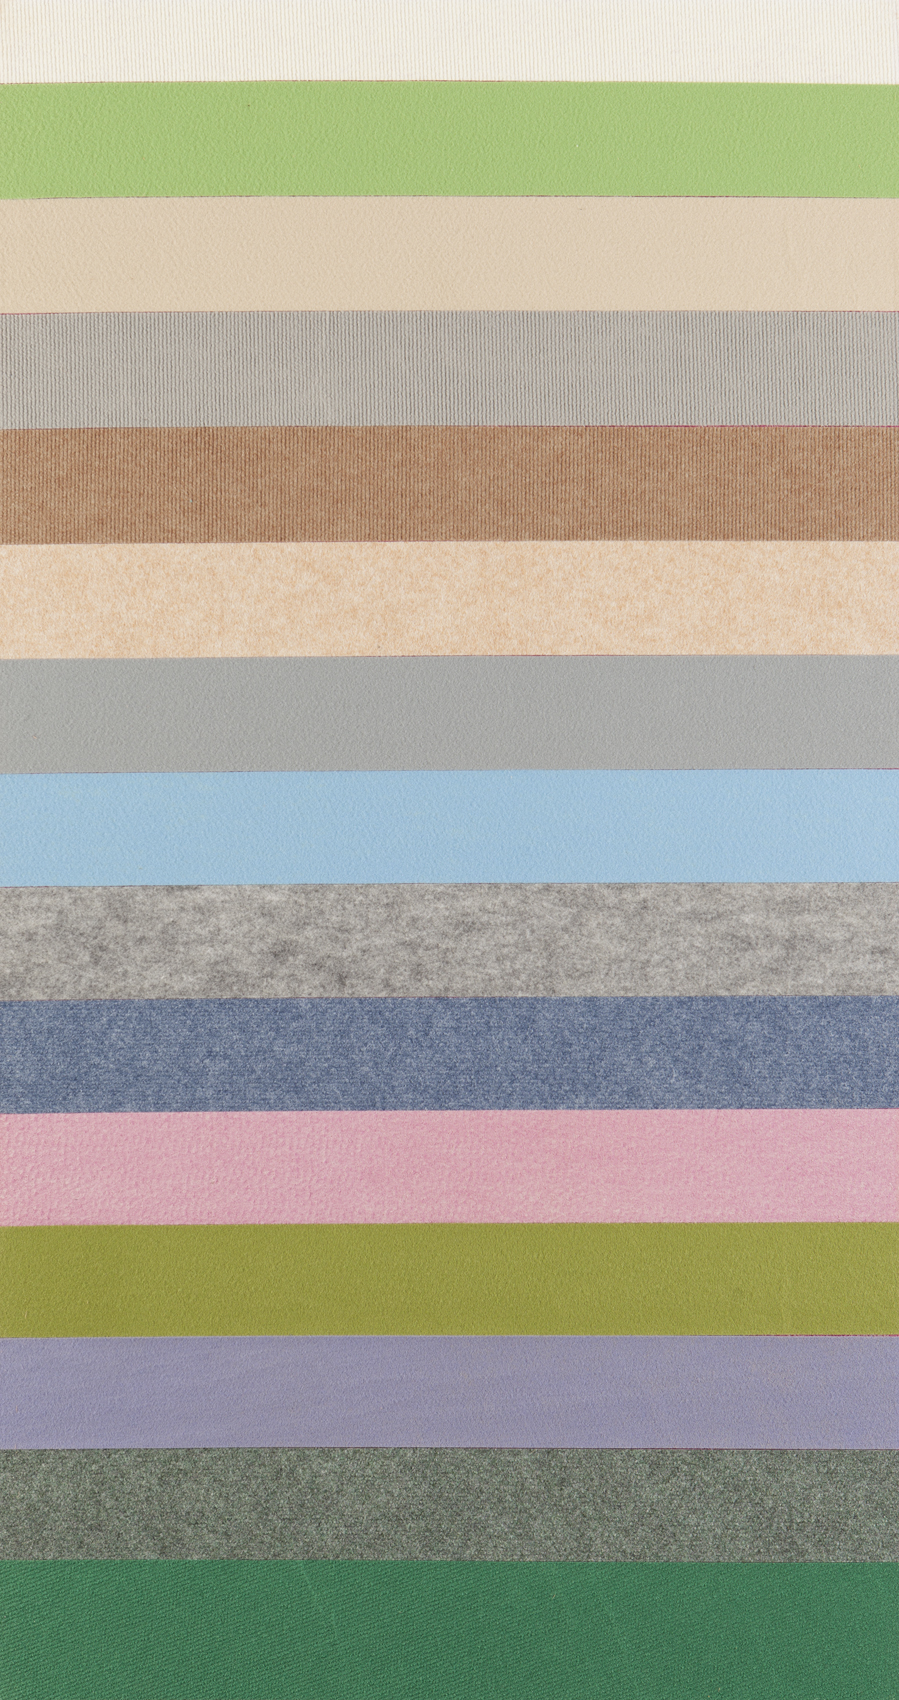 Untitled, 2016, wall to wall carpet on plywood, 150x80 cm (7).jpg